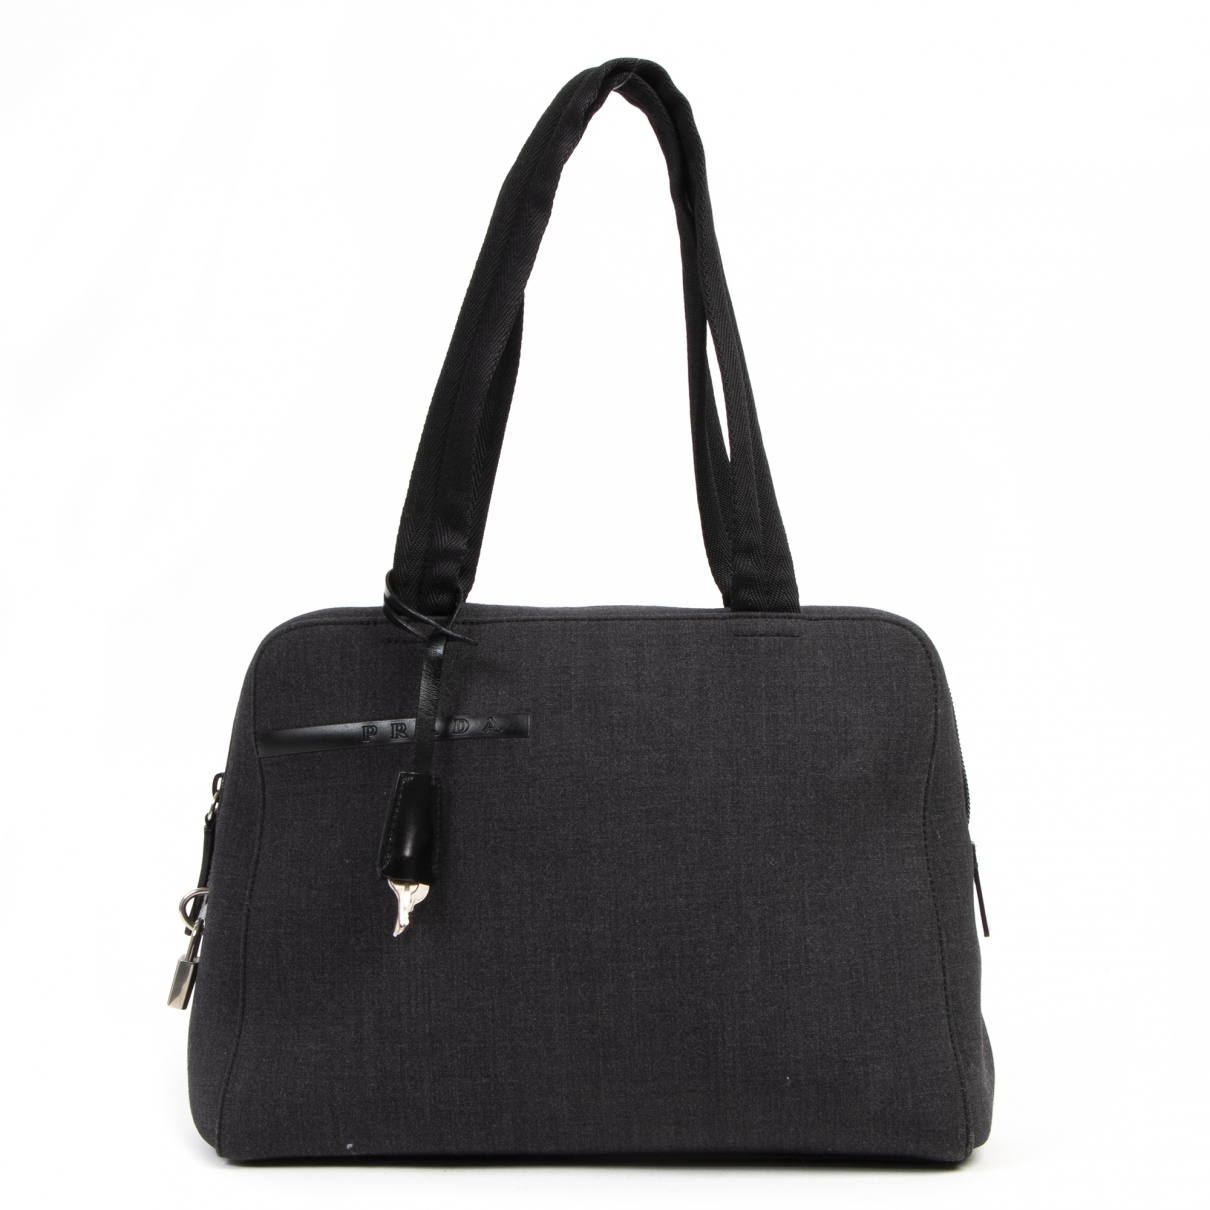 Prada \N Anthracite Cloth handbag for Women \N